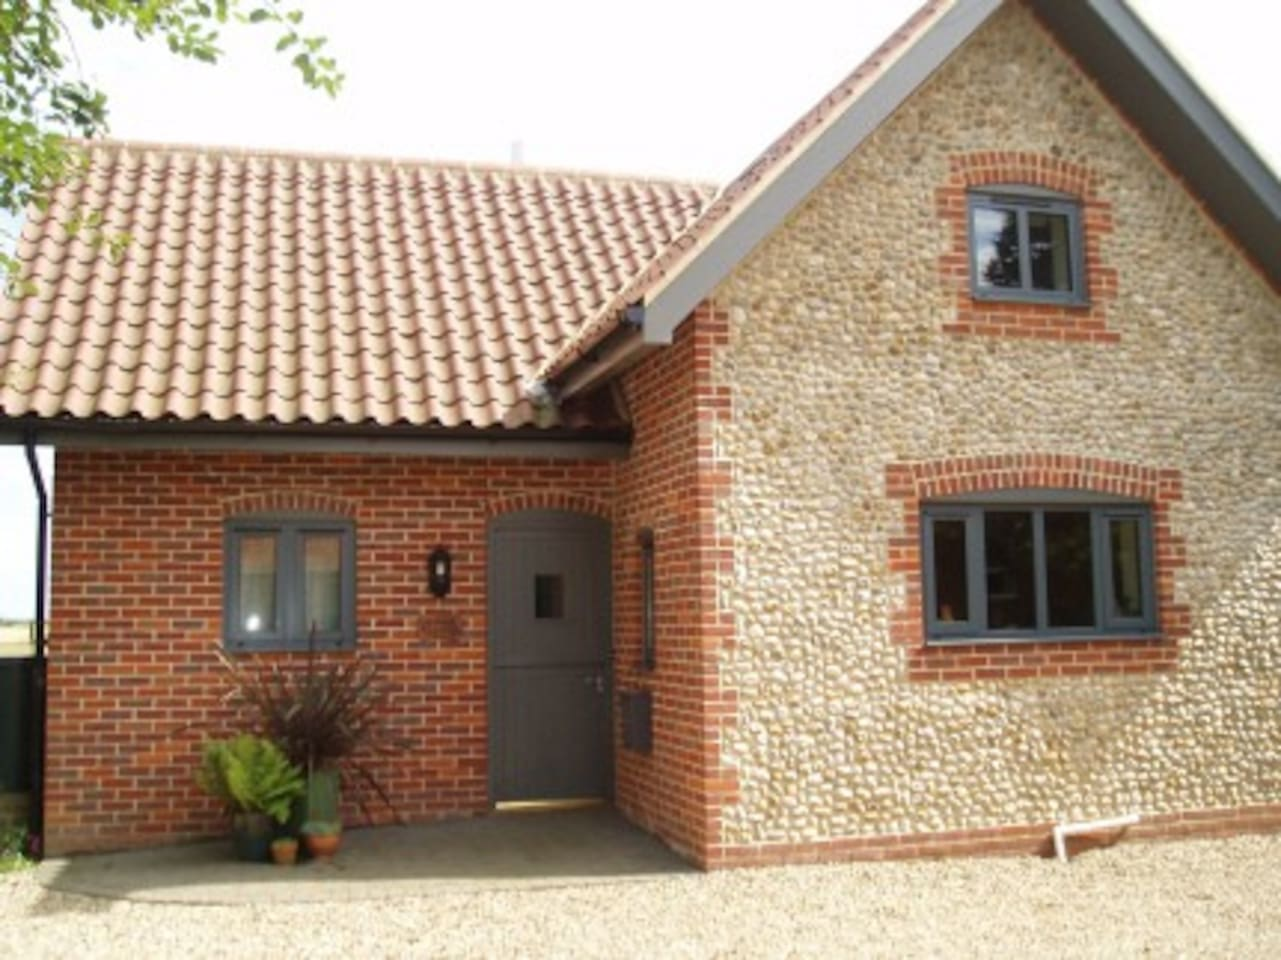 Traditional Norfolk style on the outside, but the inside modern and light filled, with underfloor central heating downstairs